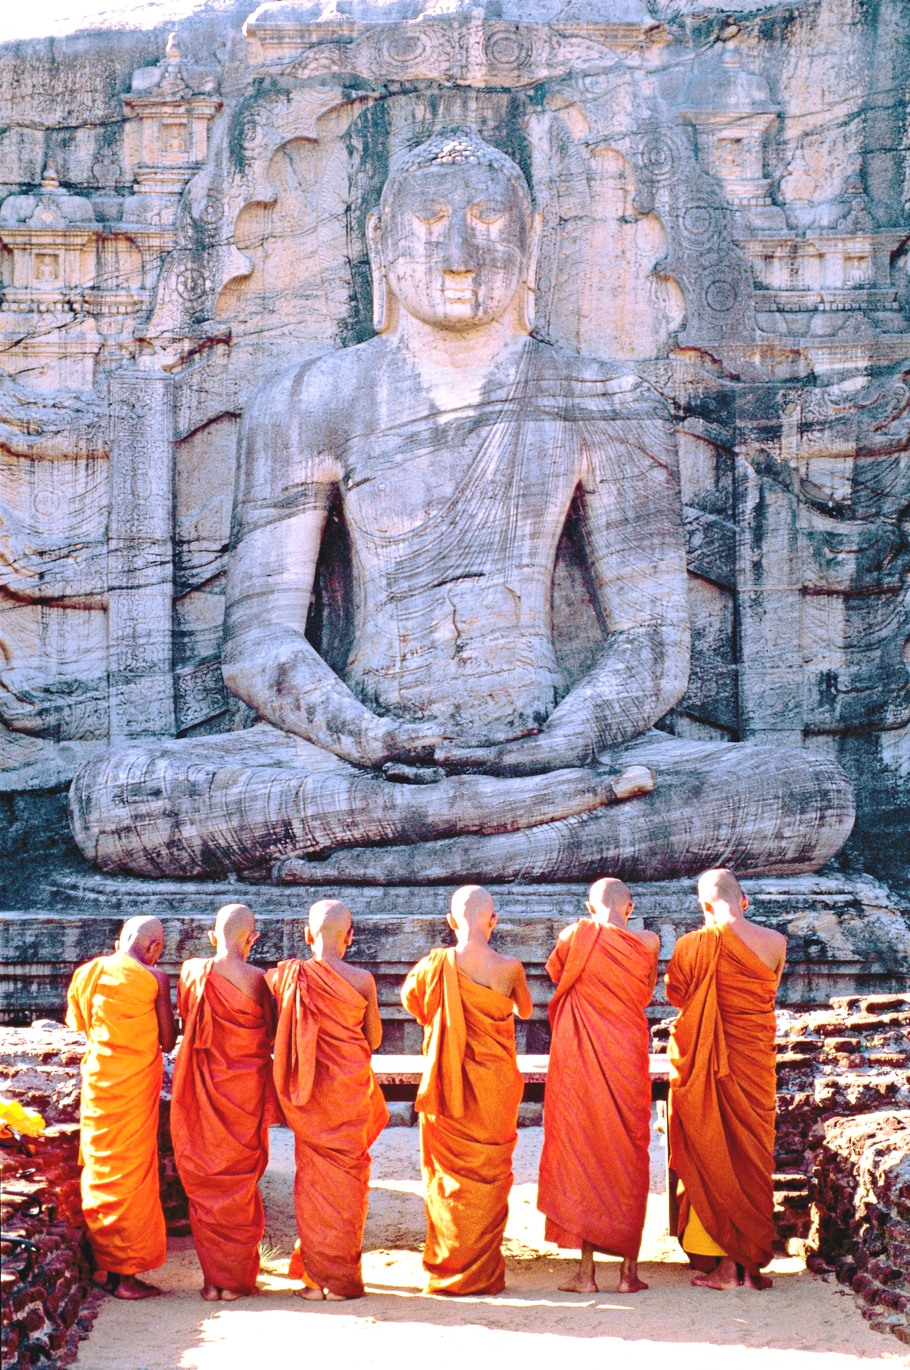 kaiser buddhist singles Calera's best 100% free buddhist dating site meet thousands of single buddhists in calera with mingle2's free buddhist personal ads and chat rooms.